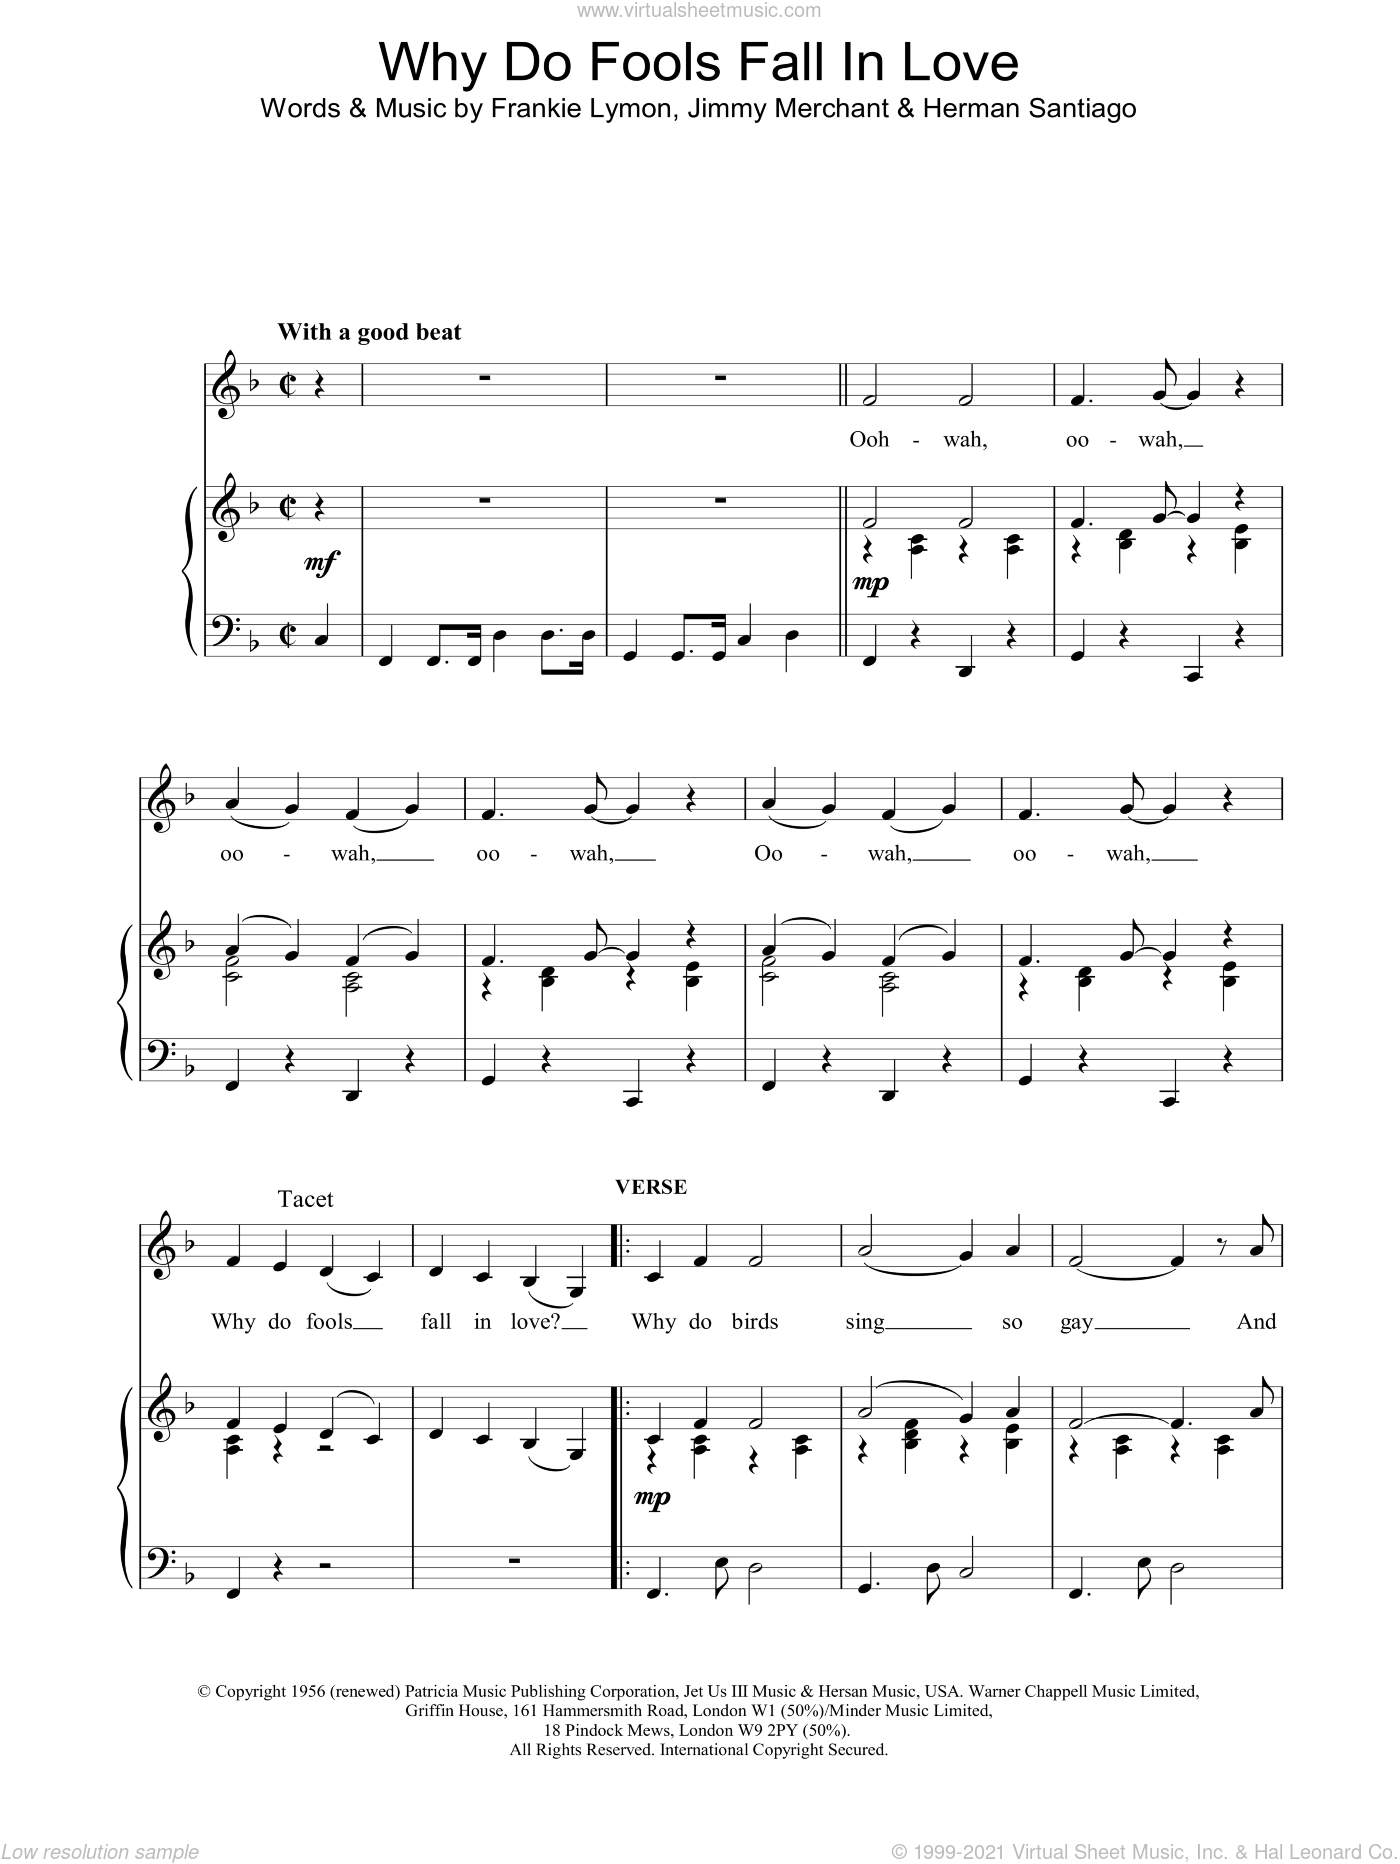 Why Do Fools Fall In Love sheet music for voice, piano or guitar by Frankie Lymon